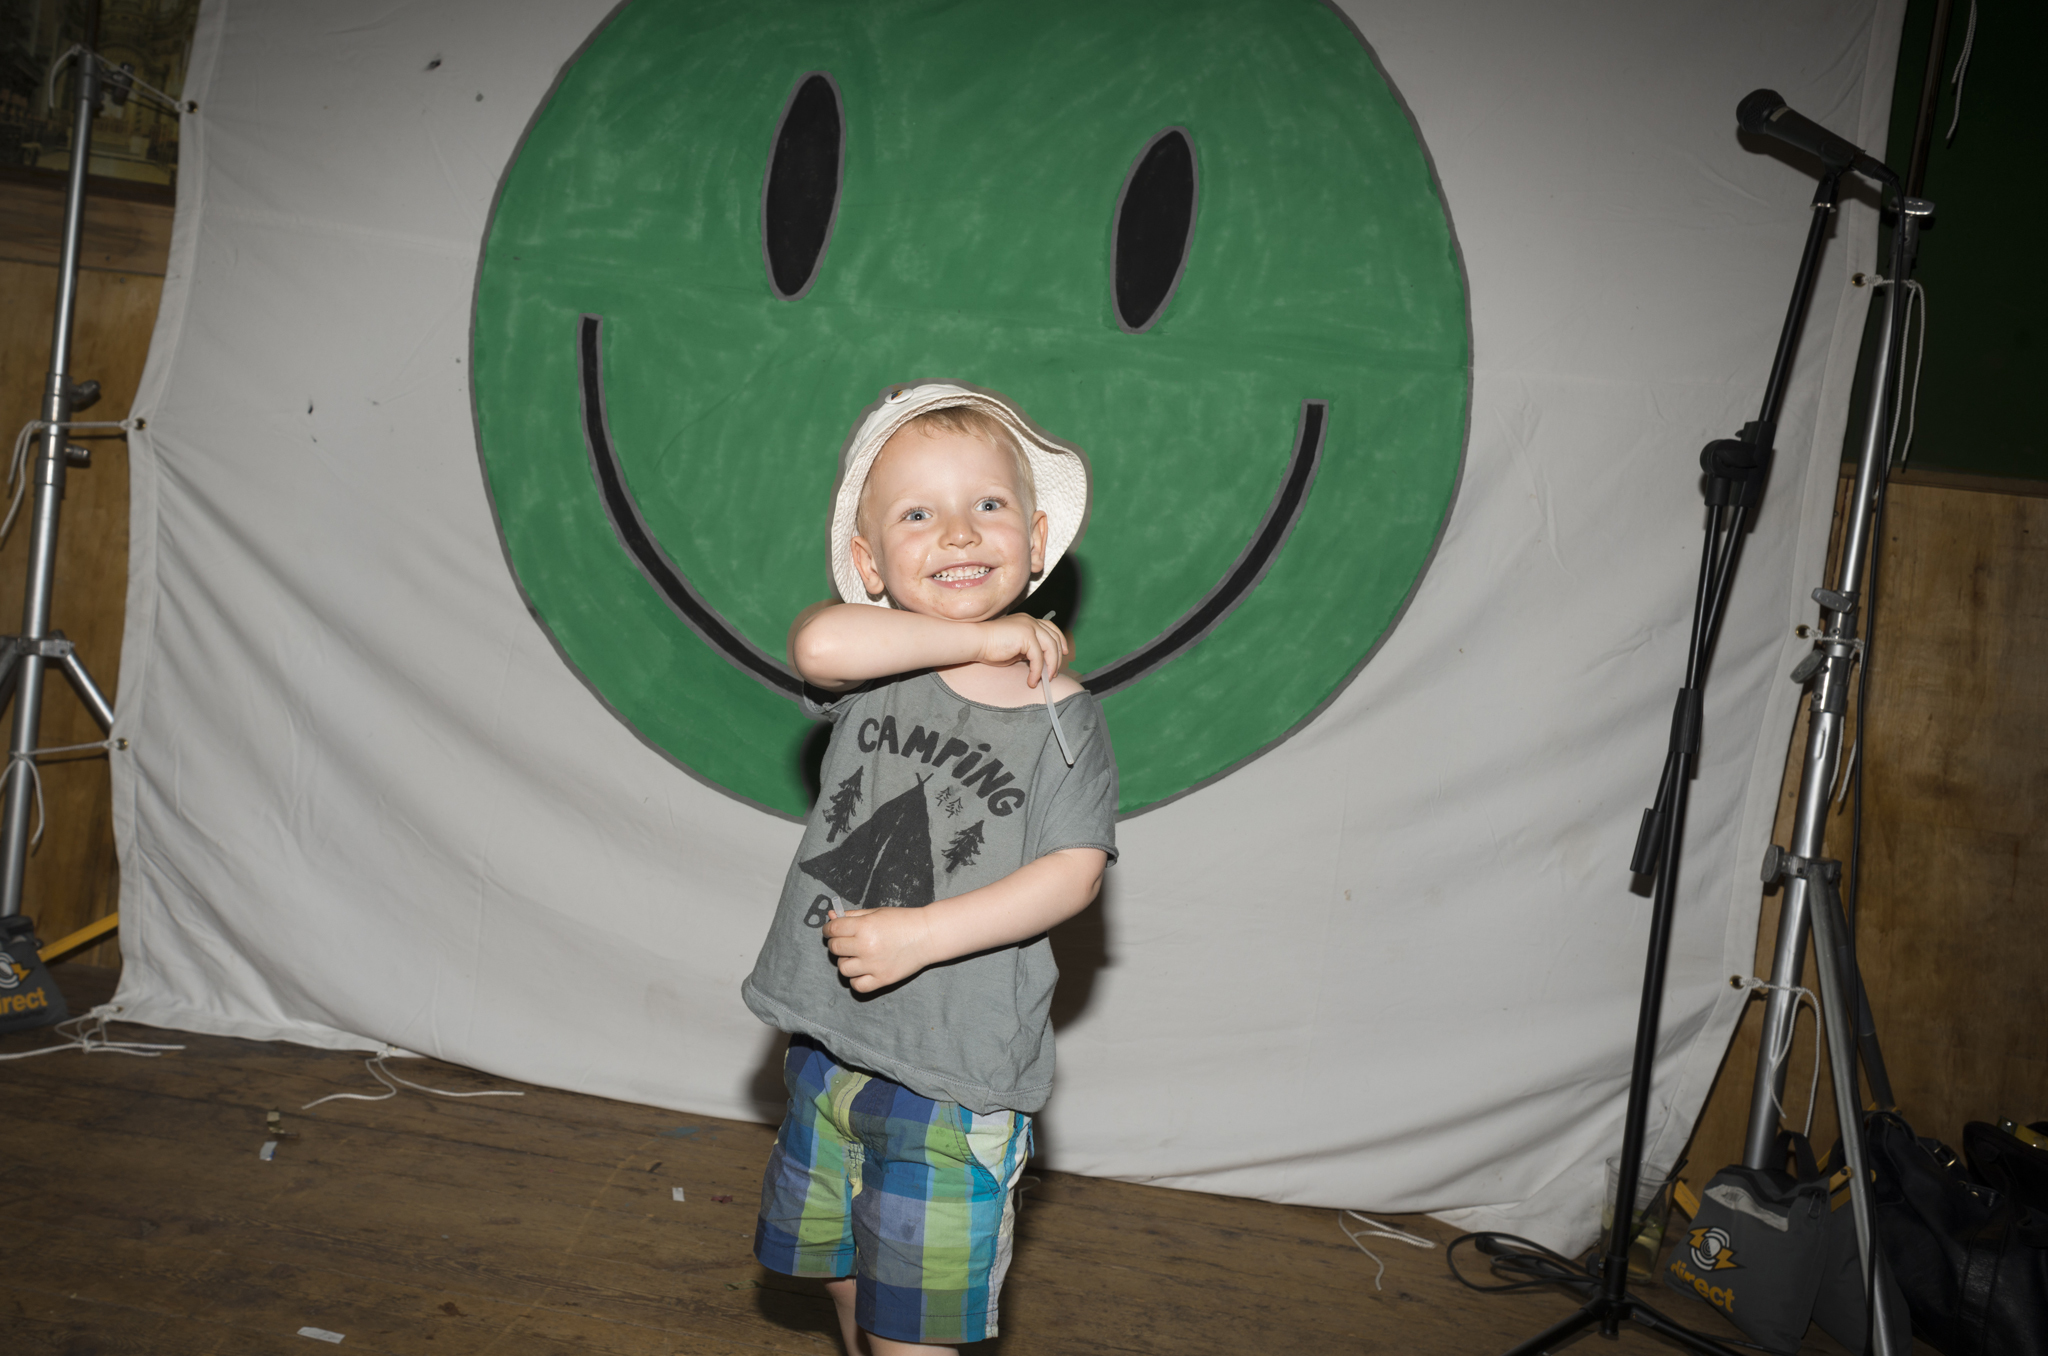 Having it tiny: clubbing for kids